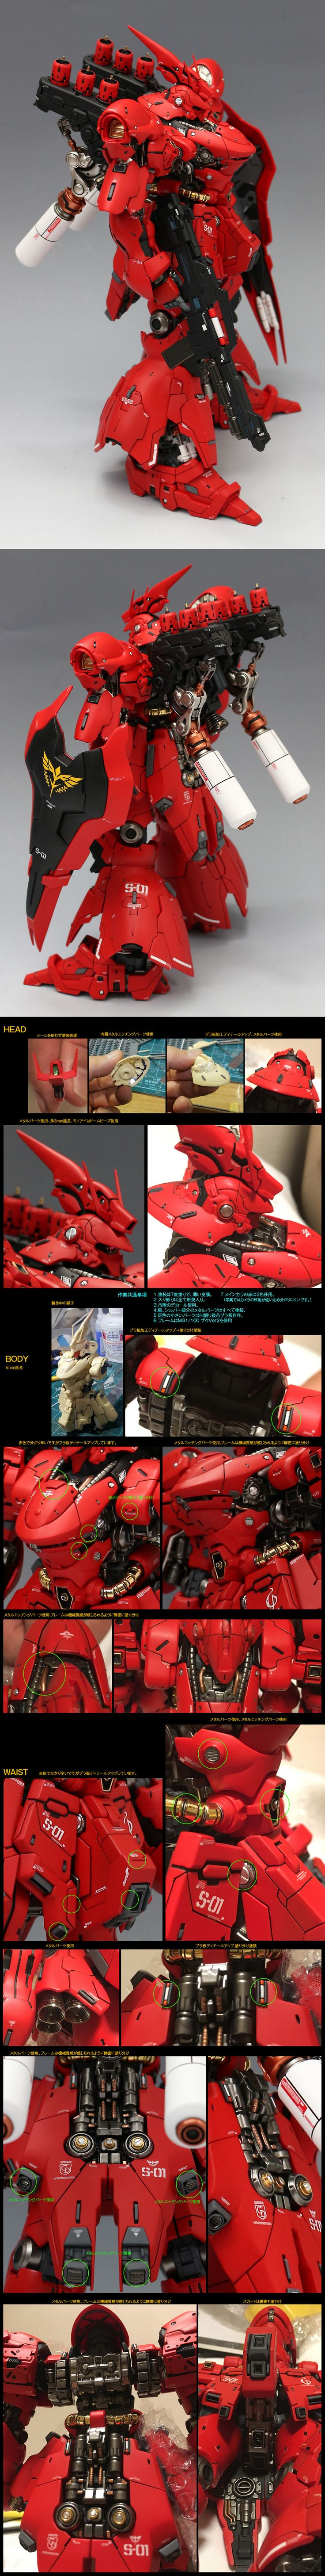 Buyee - Bid for '1/100 MSN-04 サザビー FORMANIA フォルマニア 機動戦士ガンダム 逆襲のシャア 改修塗装済み完成品, Finishedgoods, Mobile Suit Gundam/Gundam, Character.' directly on Yahoo! Japan Auctions in real-time and buy from outside Japan!